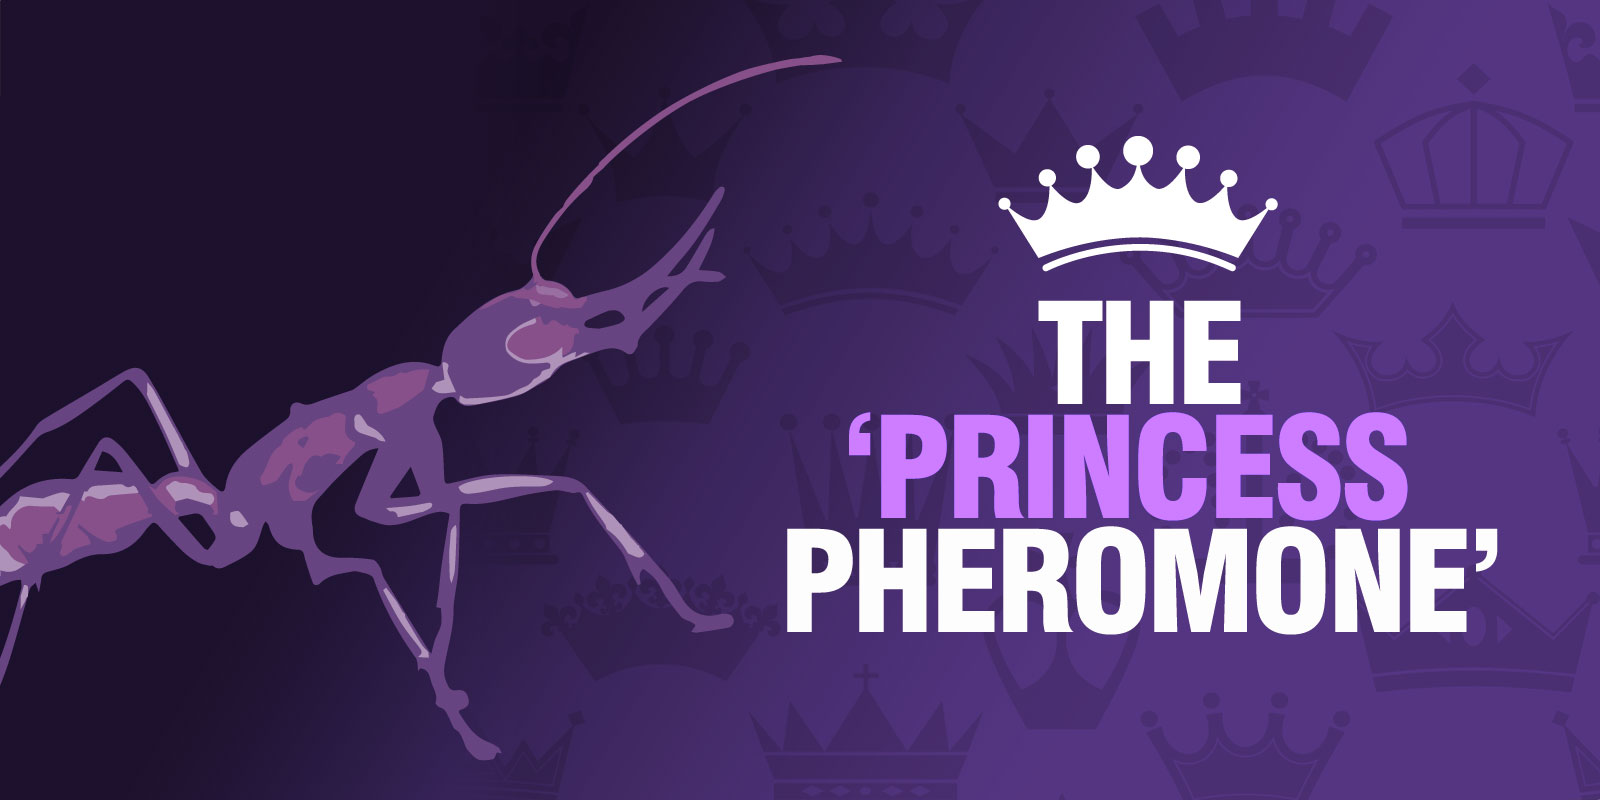 The 'Princess Pheromone'